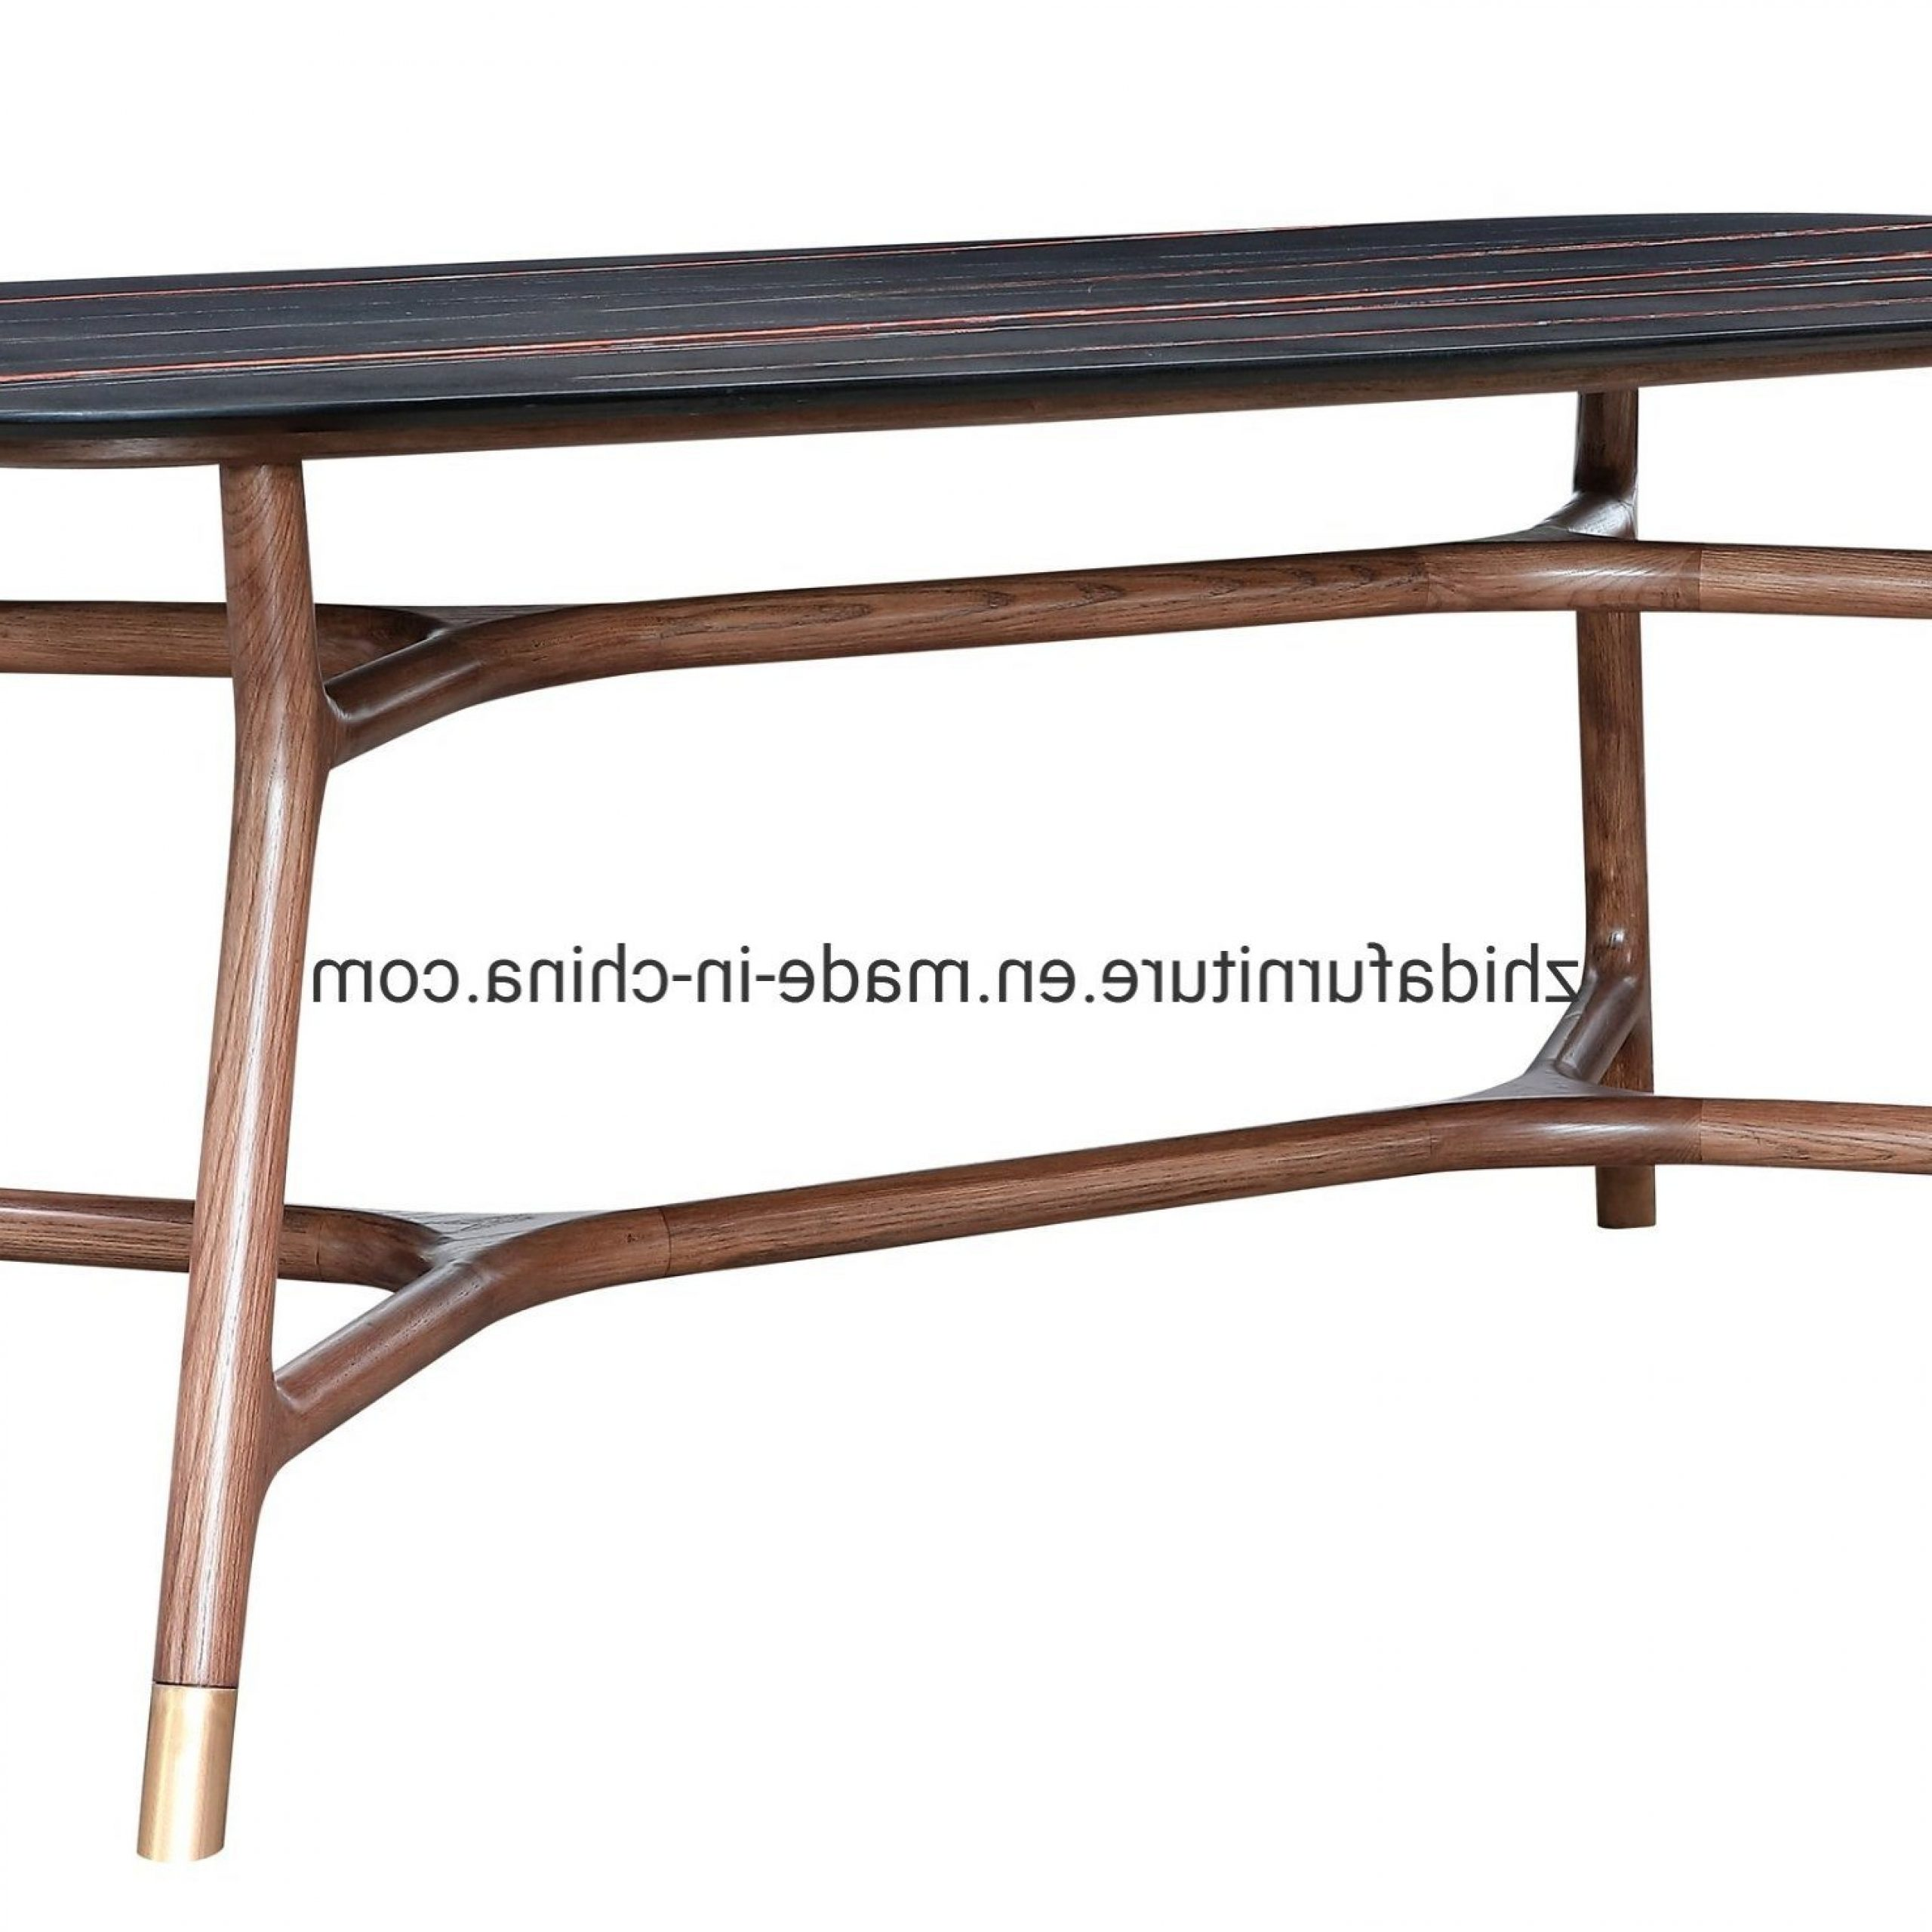 [%[Hot Item] Modern Black Marble Top Dining Table With Wooden Base With 2019 Wood Top Dining Tables|Wood Top Dining Tables Within Widely Used [Hot Item] Modern Black Marble Top Dining Table With Wooden Base|2019 Wood Top Dining Tables With [Hot Item] Modern Black Marble Top Dining Table With Wooden Base|Fashionable [Hot Item] Modern Black Marble Top Dining Table With Wooden Base Regarding Wood Top Dining Tables%] (View 9 of 25)